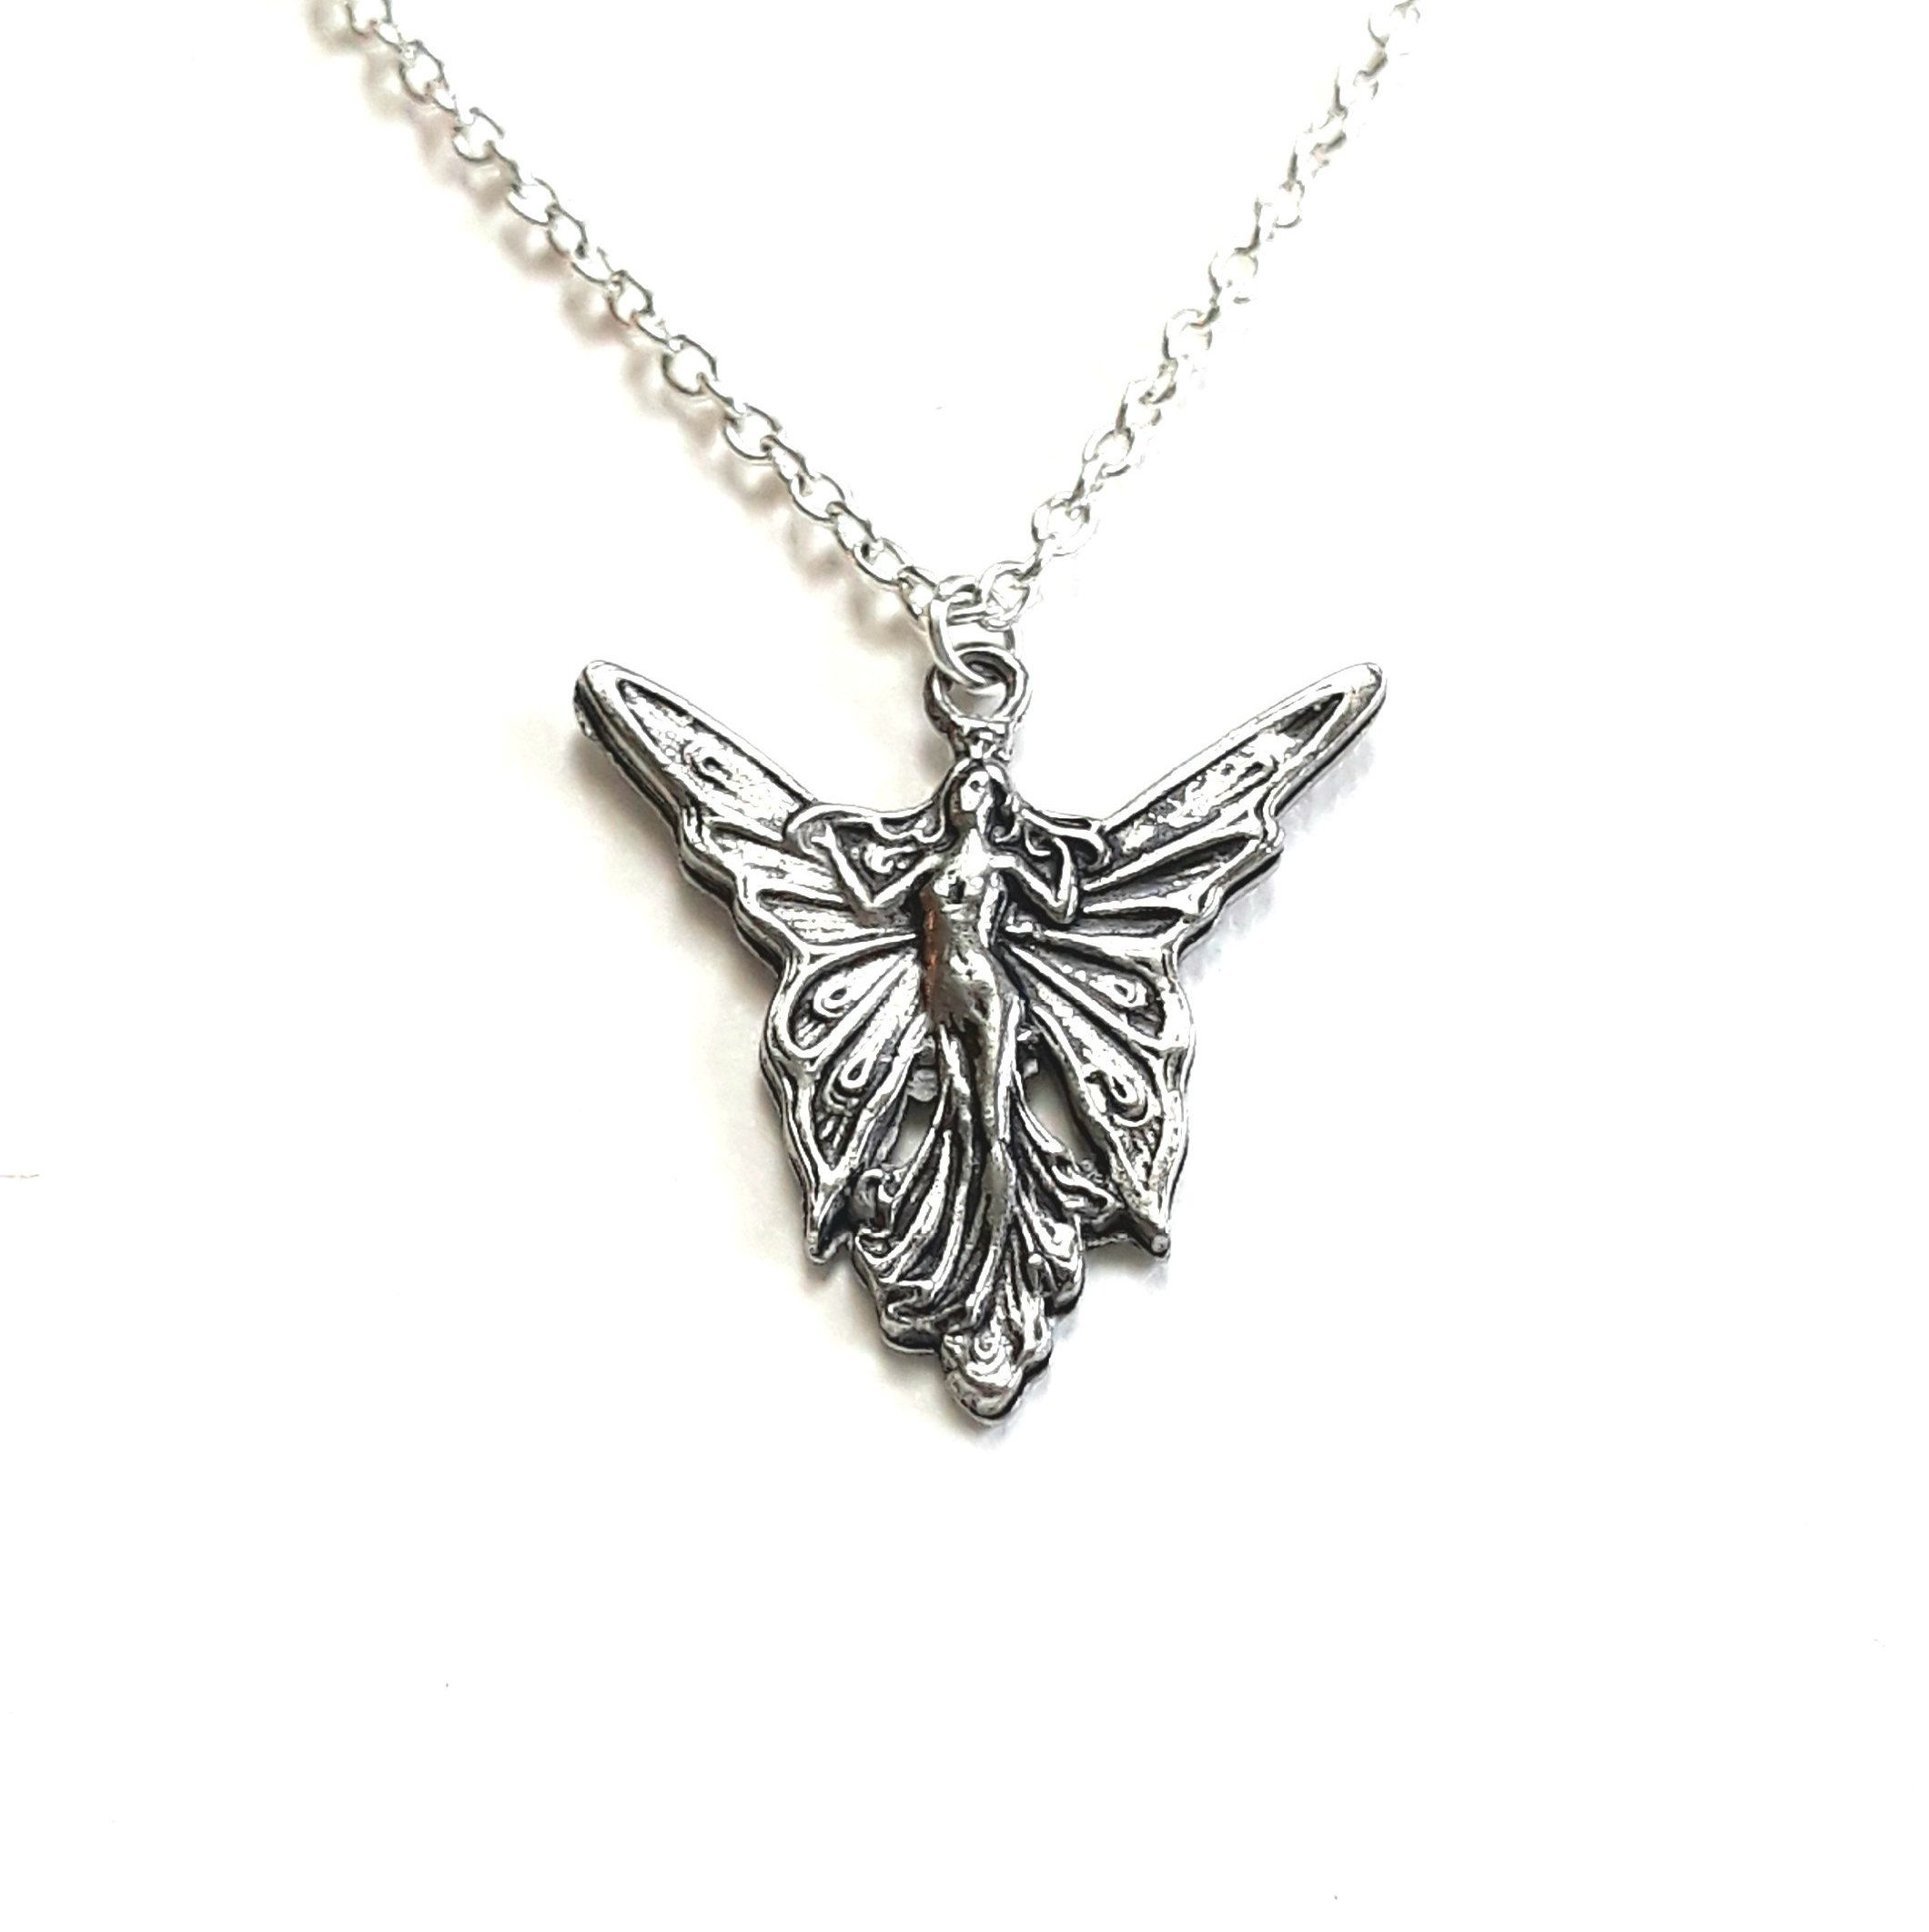 shipping glamour silver carolina product collection necklace today sterling brown jewelry amy fairy peace inch free chain on overstock pendant box watches